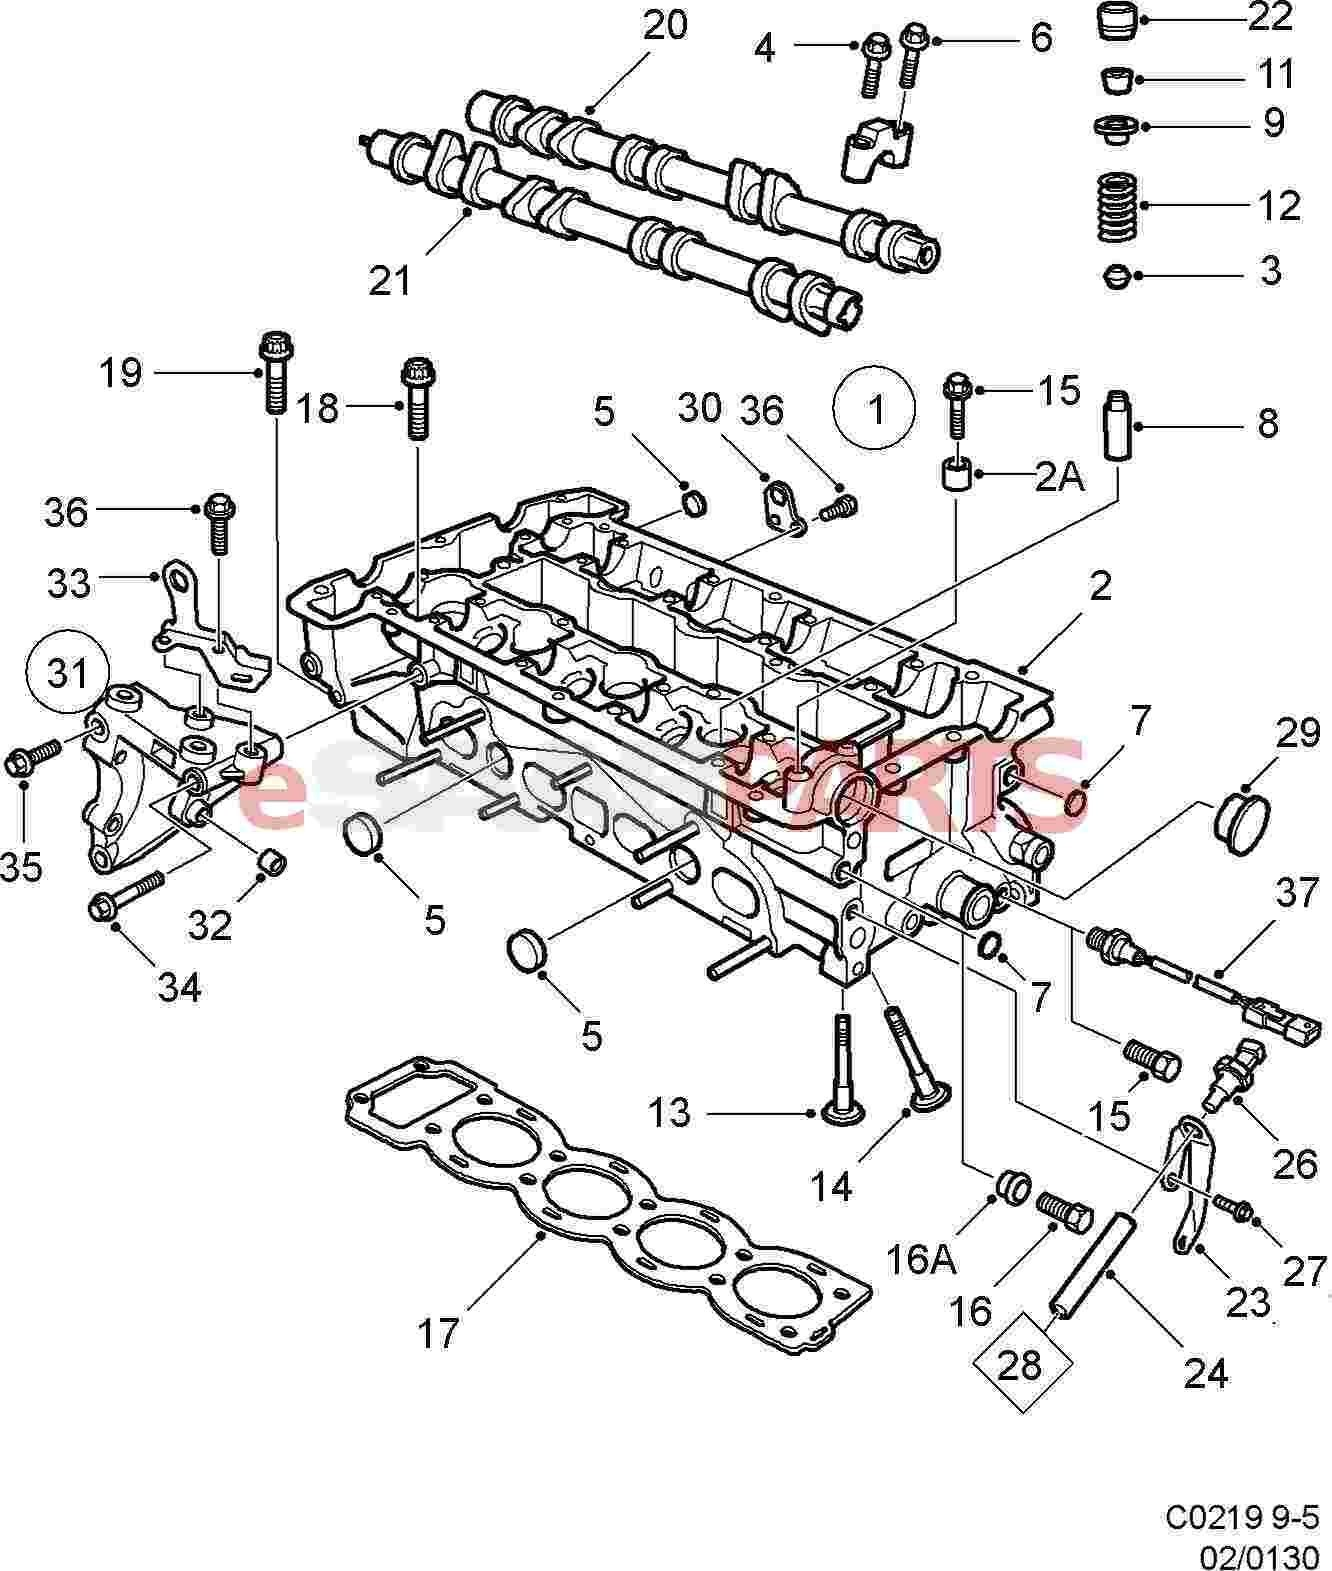 2007 Saab 9 5 Engine Diagram • Wiring Diagram For Free